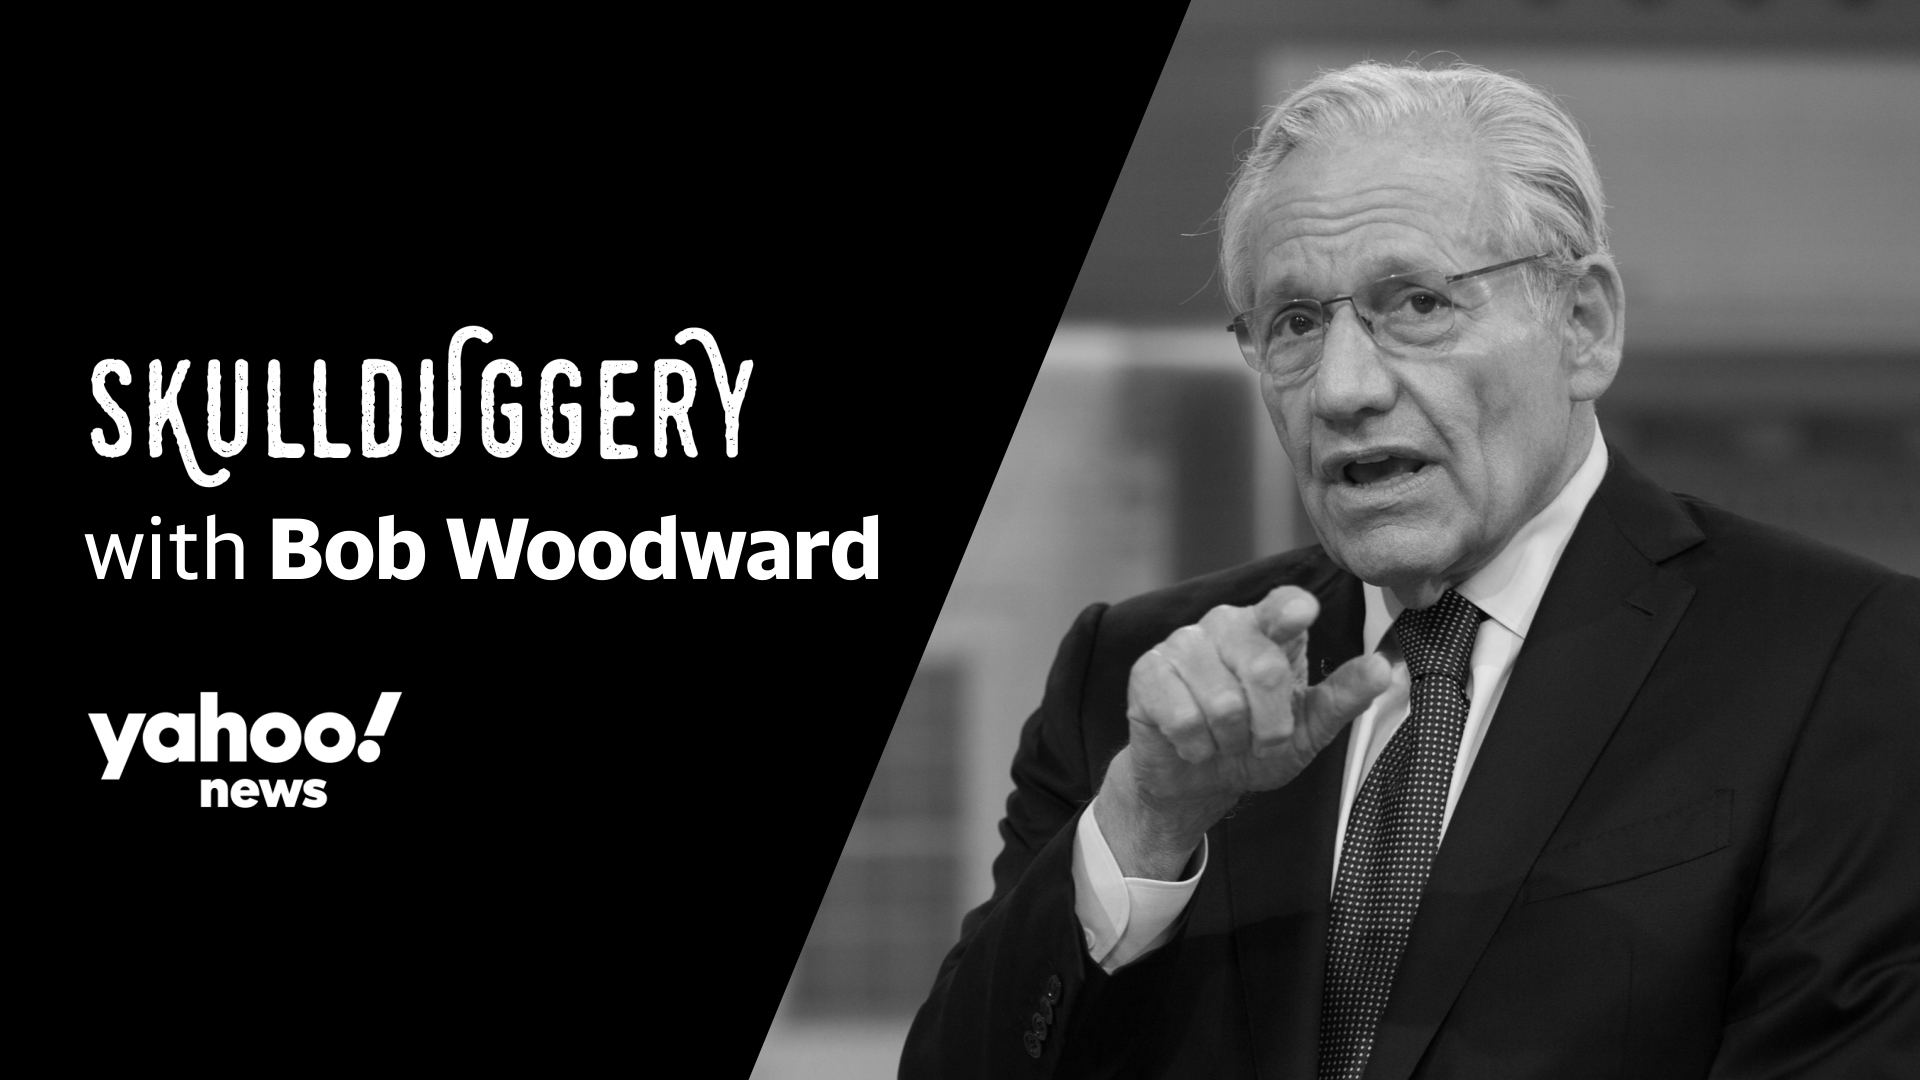 Woodward on decision not to release Trump recordings early: 'My God, I would have if I could save one life'